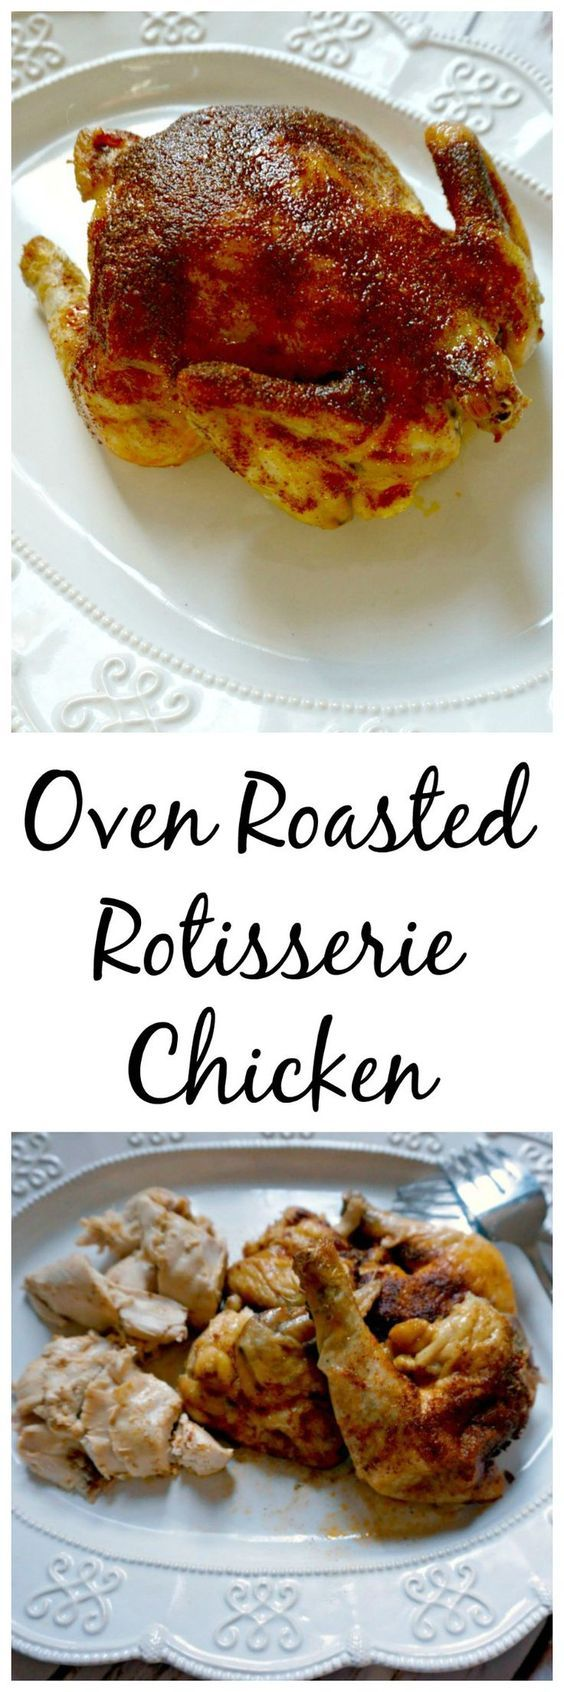 Oven Roasted Rotisserie Chicken: Skip the preservatives and additives found in store-bought Rotisserie chickens and make your own with only 5 minutes of work!! You end up with a juicy, tender chicken that stars on it's own or in any dish that calls for cooked chicken.